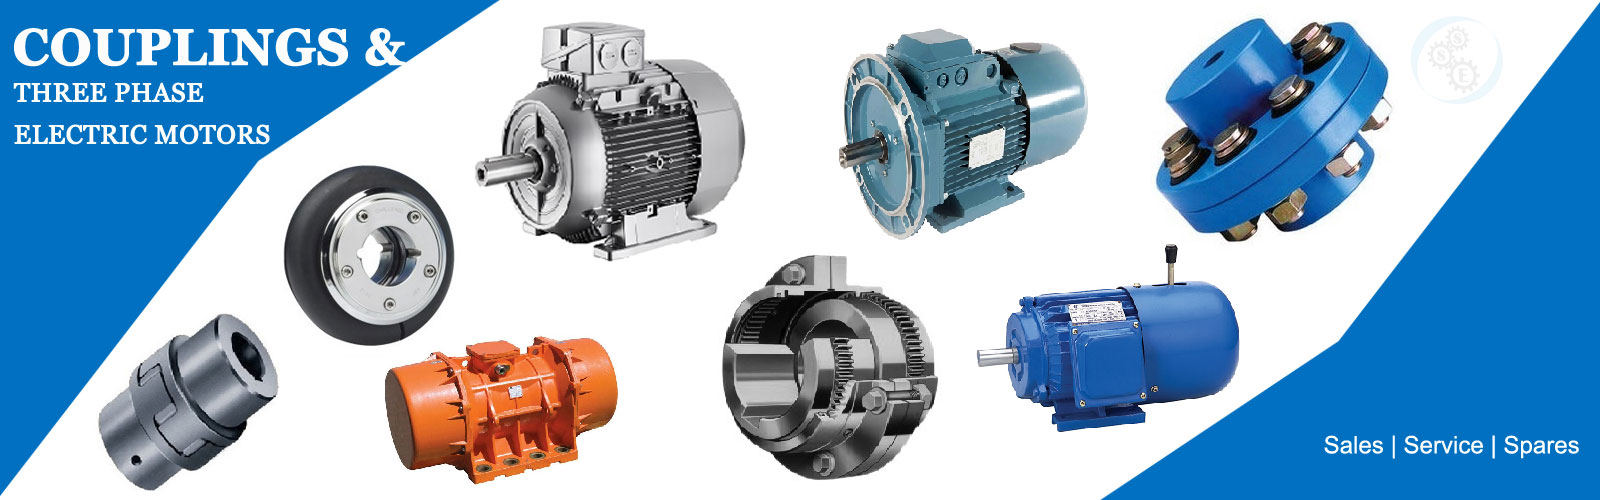 coupling-thee-phase-electric-motors_sai_seva_engineers